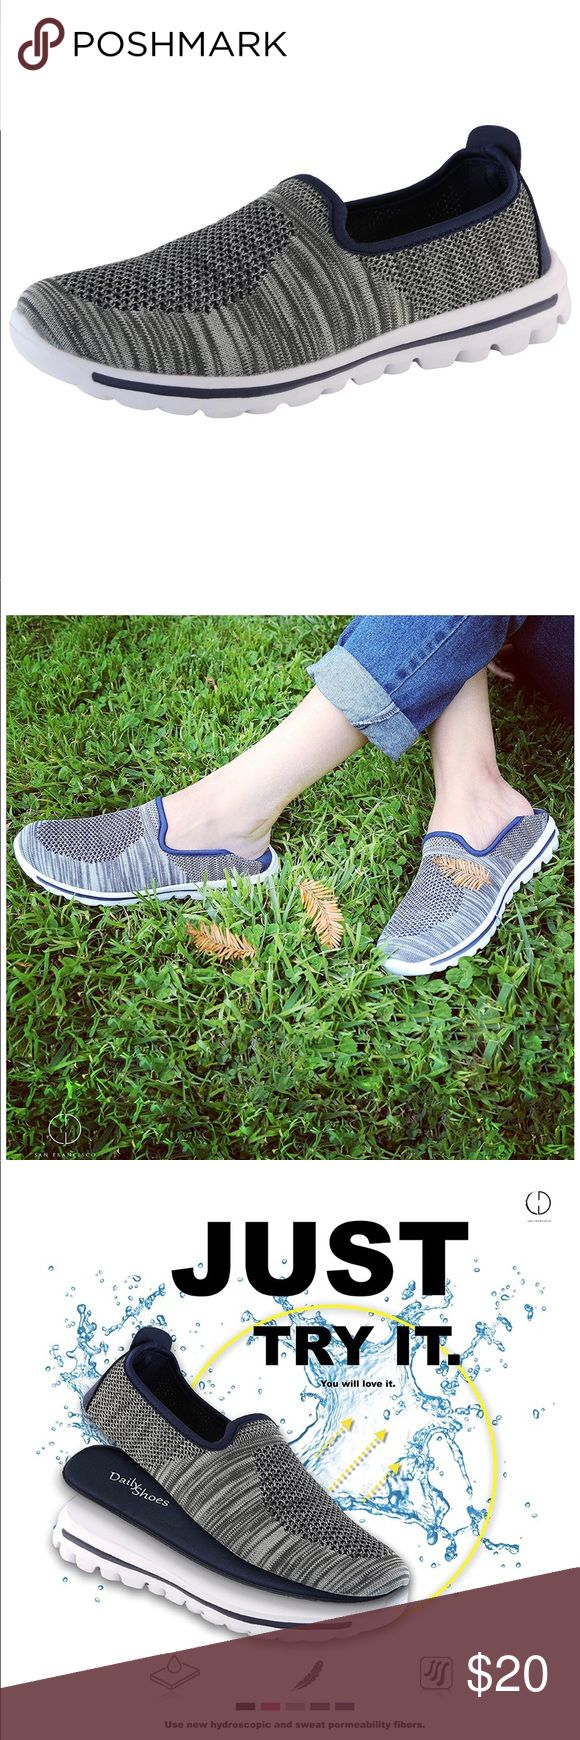 | DailyShoes | Women's Sneakers • Women's Sneakers Fit Mesh Slip-On Style Walking Shoes With Memory Foam Insoles- Breathable Mesh - Durable Soles - Reliable Traction - Perfect For Walks and JOGS • Fabric & Synthetic / Rubber Sole  •New in Box  • Original Price $25.00 DailyShoes Shoes Sneakers